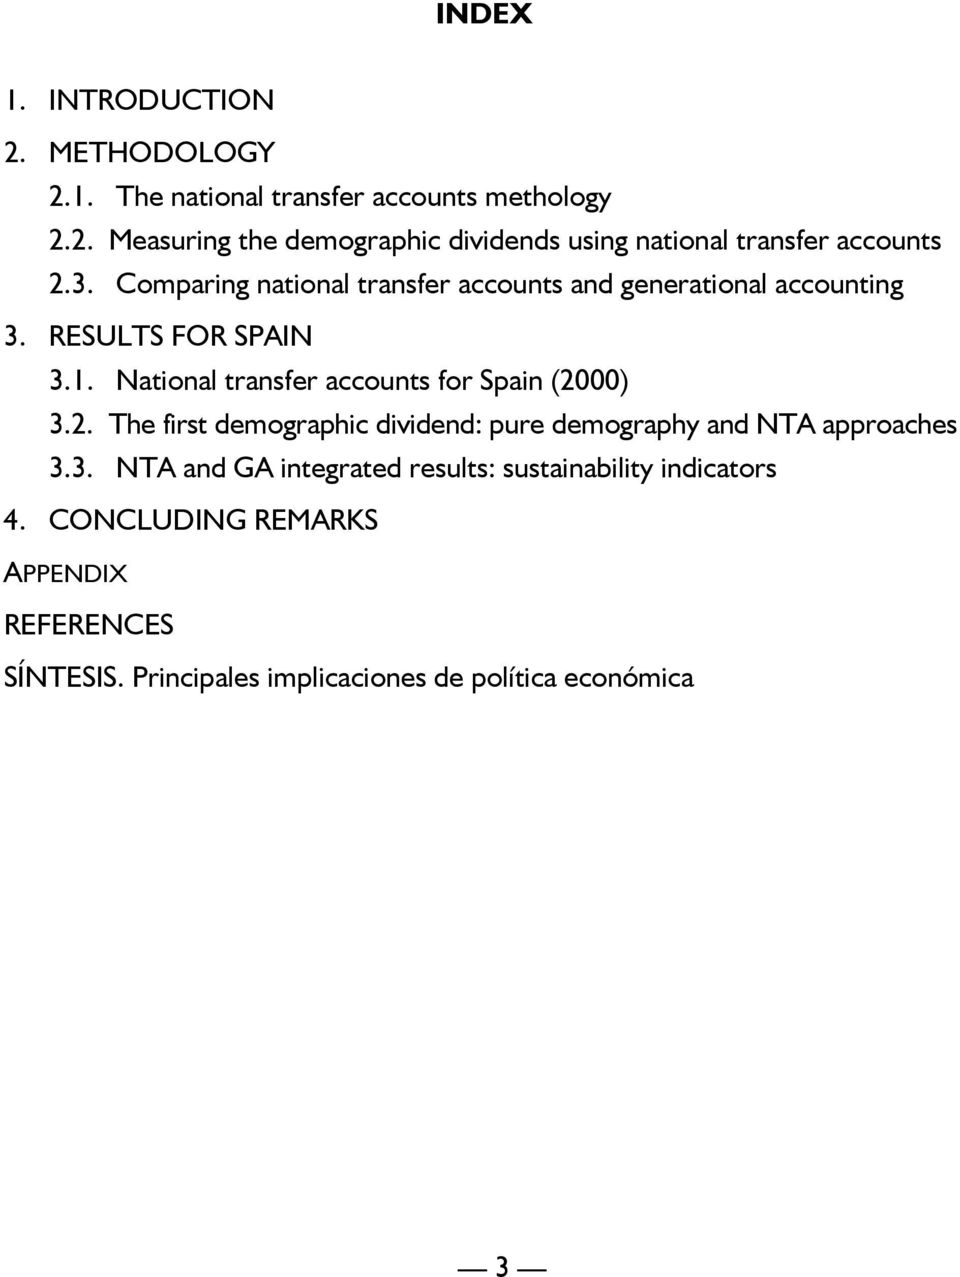 National transfer accounts for Spain (2000) 3. 3.2. The first demographic dividend: pure demography and NTA approaches 3. 3.3. NTA and GA integrated results: sustainability indicators 4.